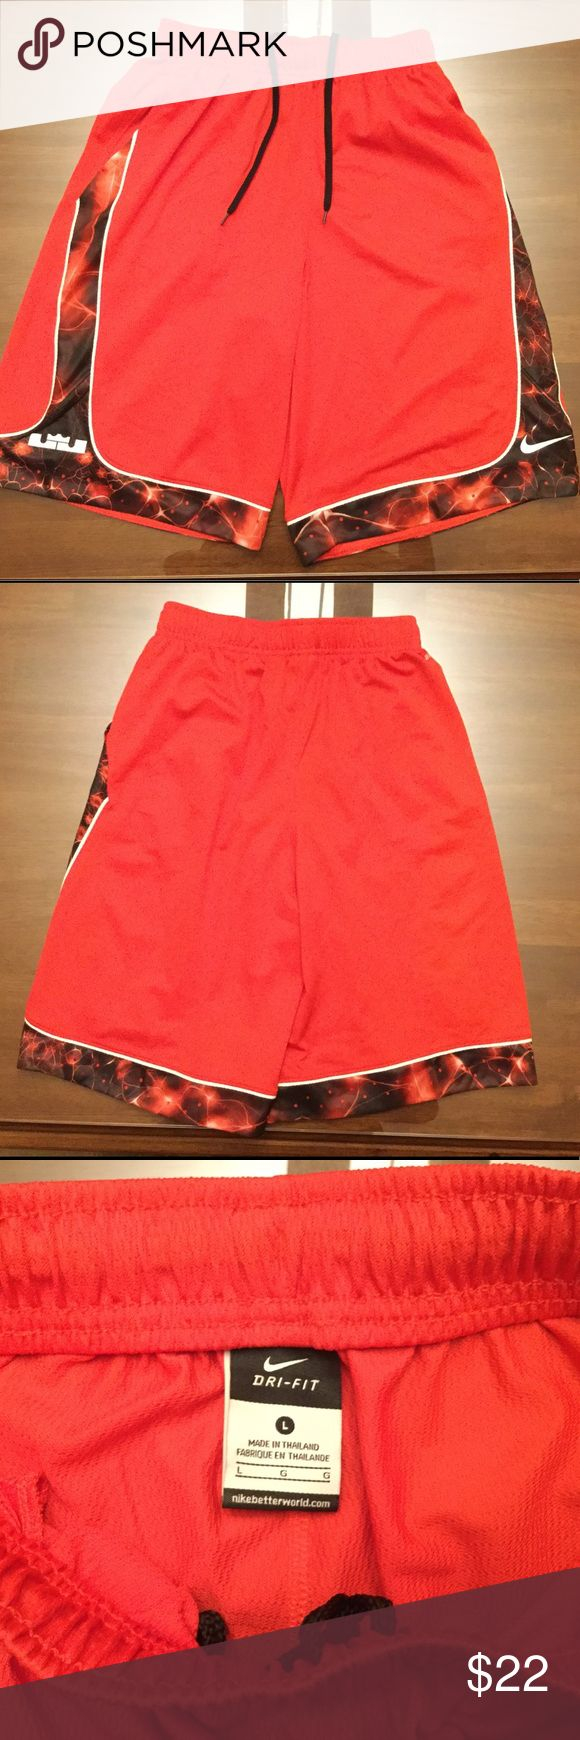 Nike x Lebron James Basketball Shorts NWOT Red Lebron James basketball shorts - size: youth large, runs true to size. Condition: 10/10 - never worn but missing tags. Nike Bottoms Shorts